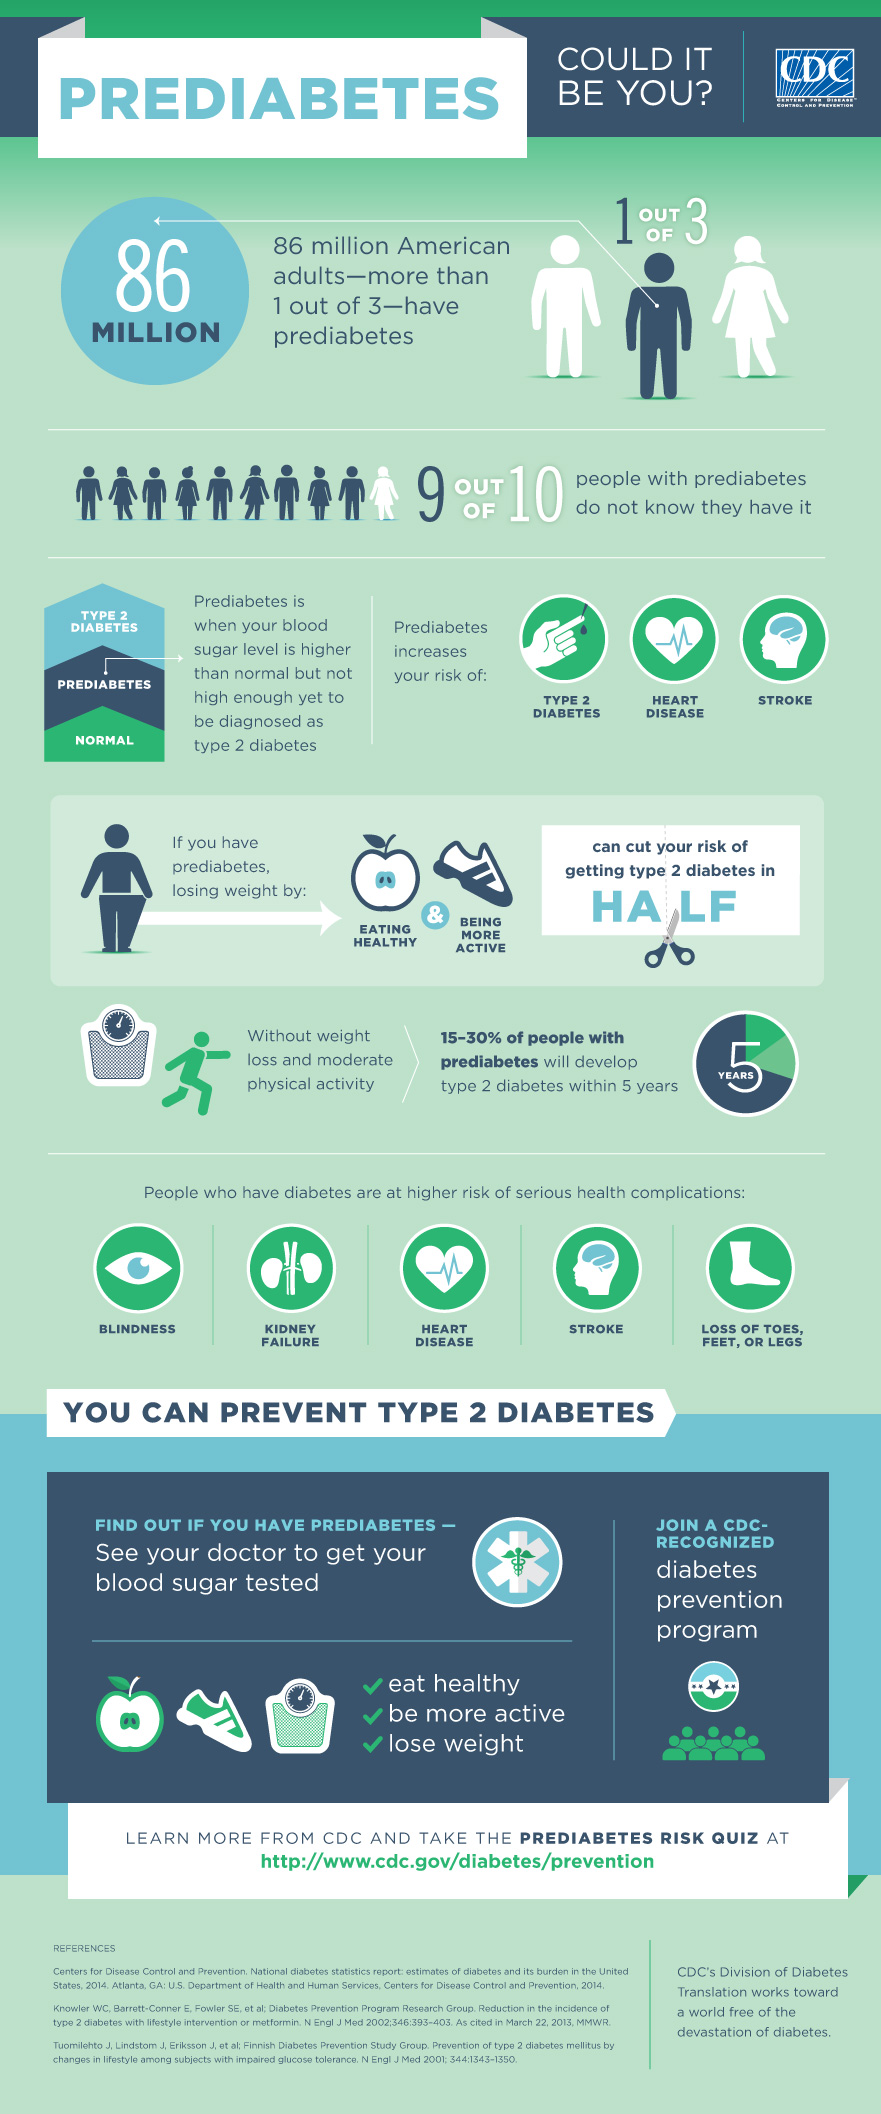 PreDiabetes - Could It be you?